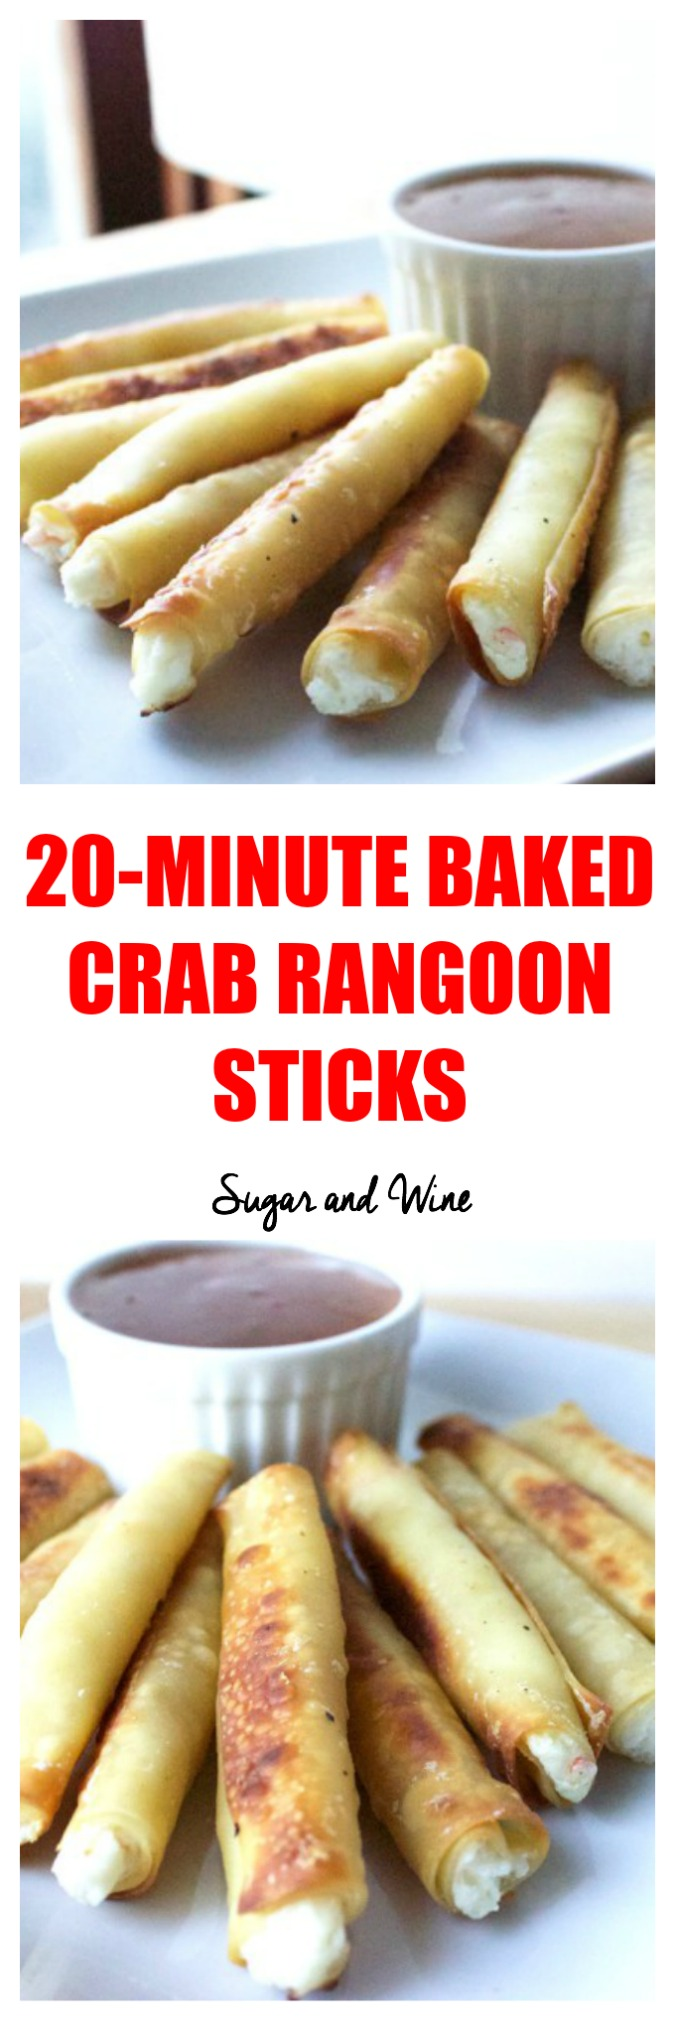 20 Minute Baked Crab Rangoon Sticks | Sugar and Wine